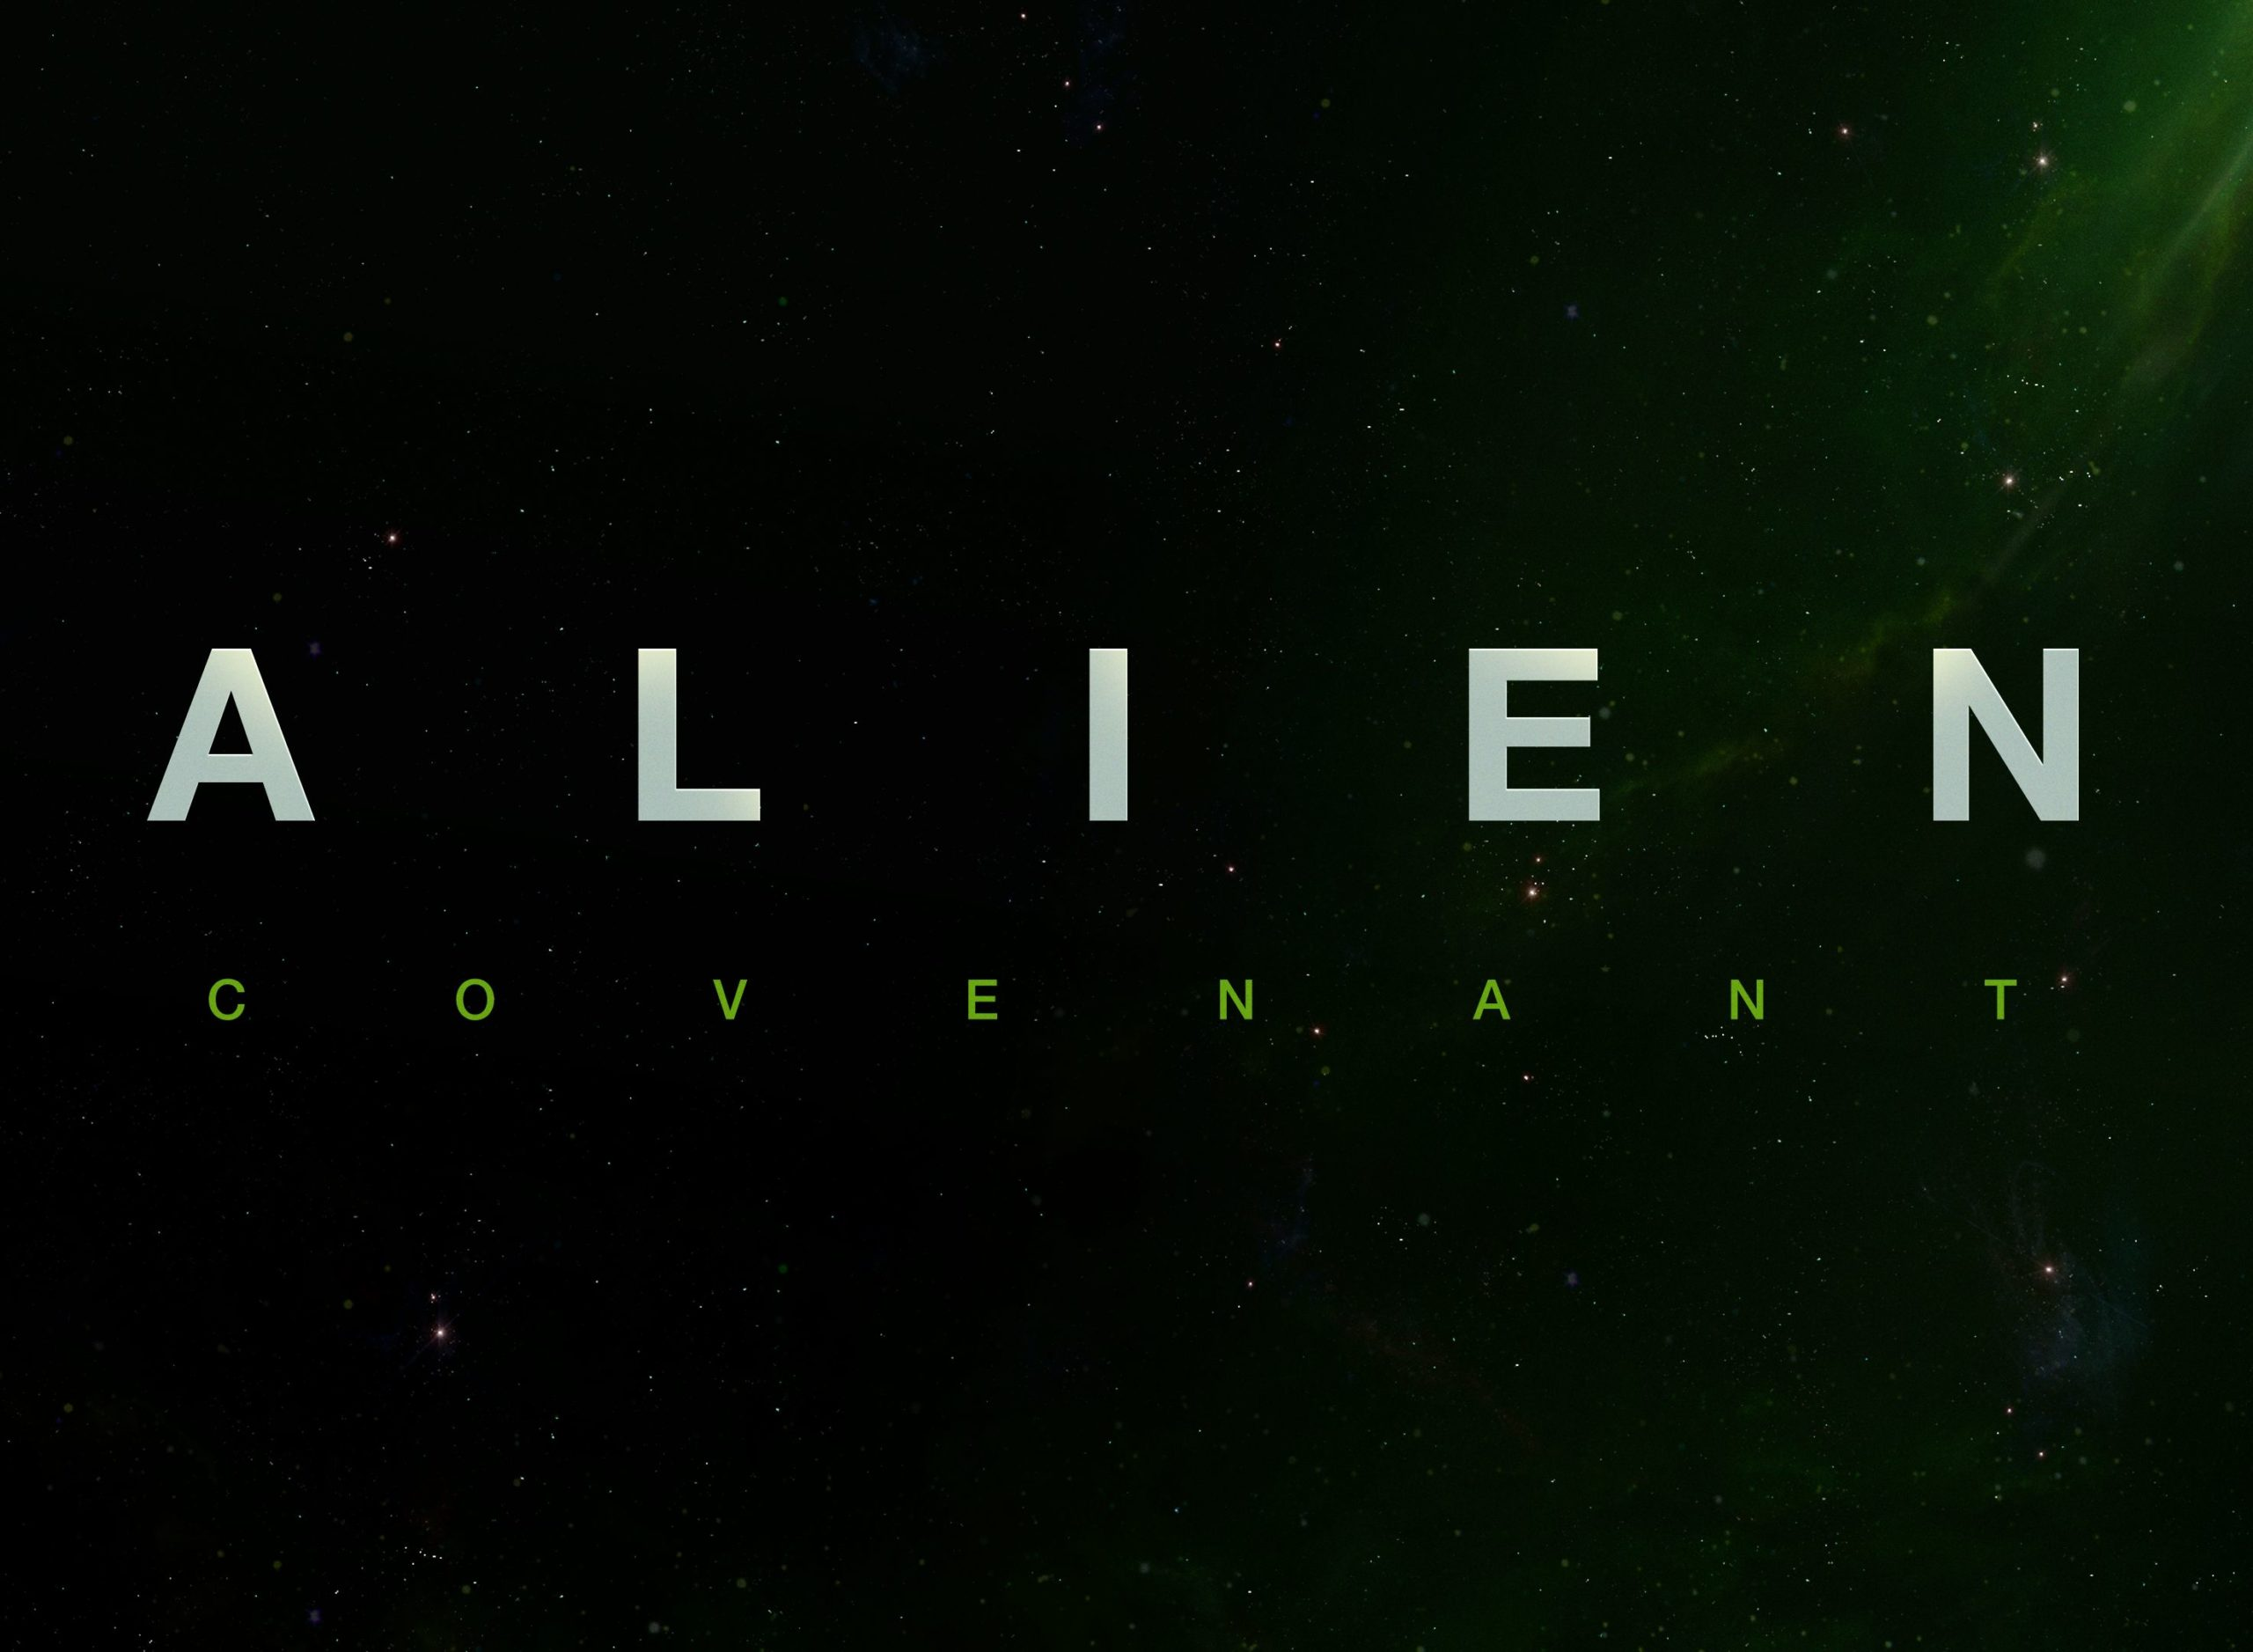 Logo du film Alien: Covenant réalisé par Ridley Scott avec Michael Fassbender (David et Walter), Katherine Waterston, Danny McBride (Tennessee), Billy Crudup (Christopher Oram), Demián Bichir (Lope)